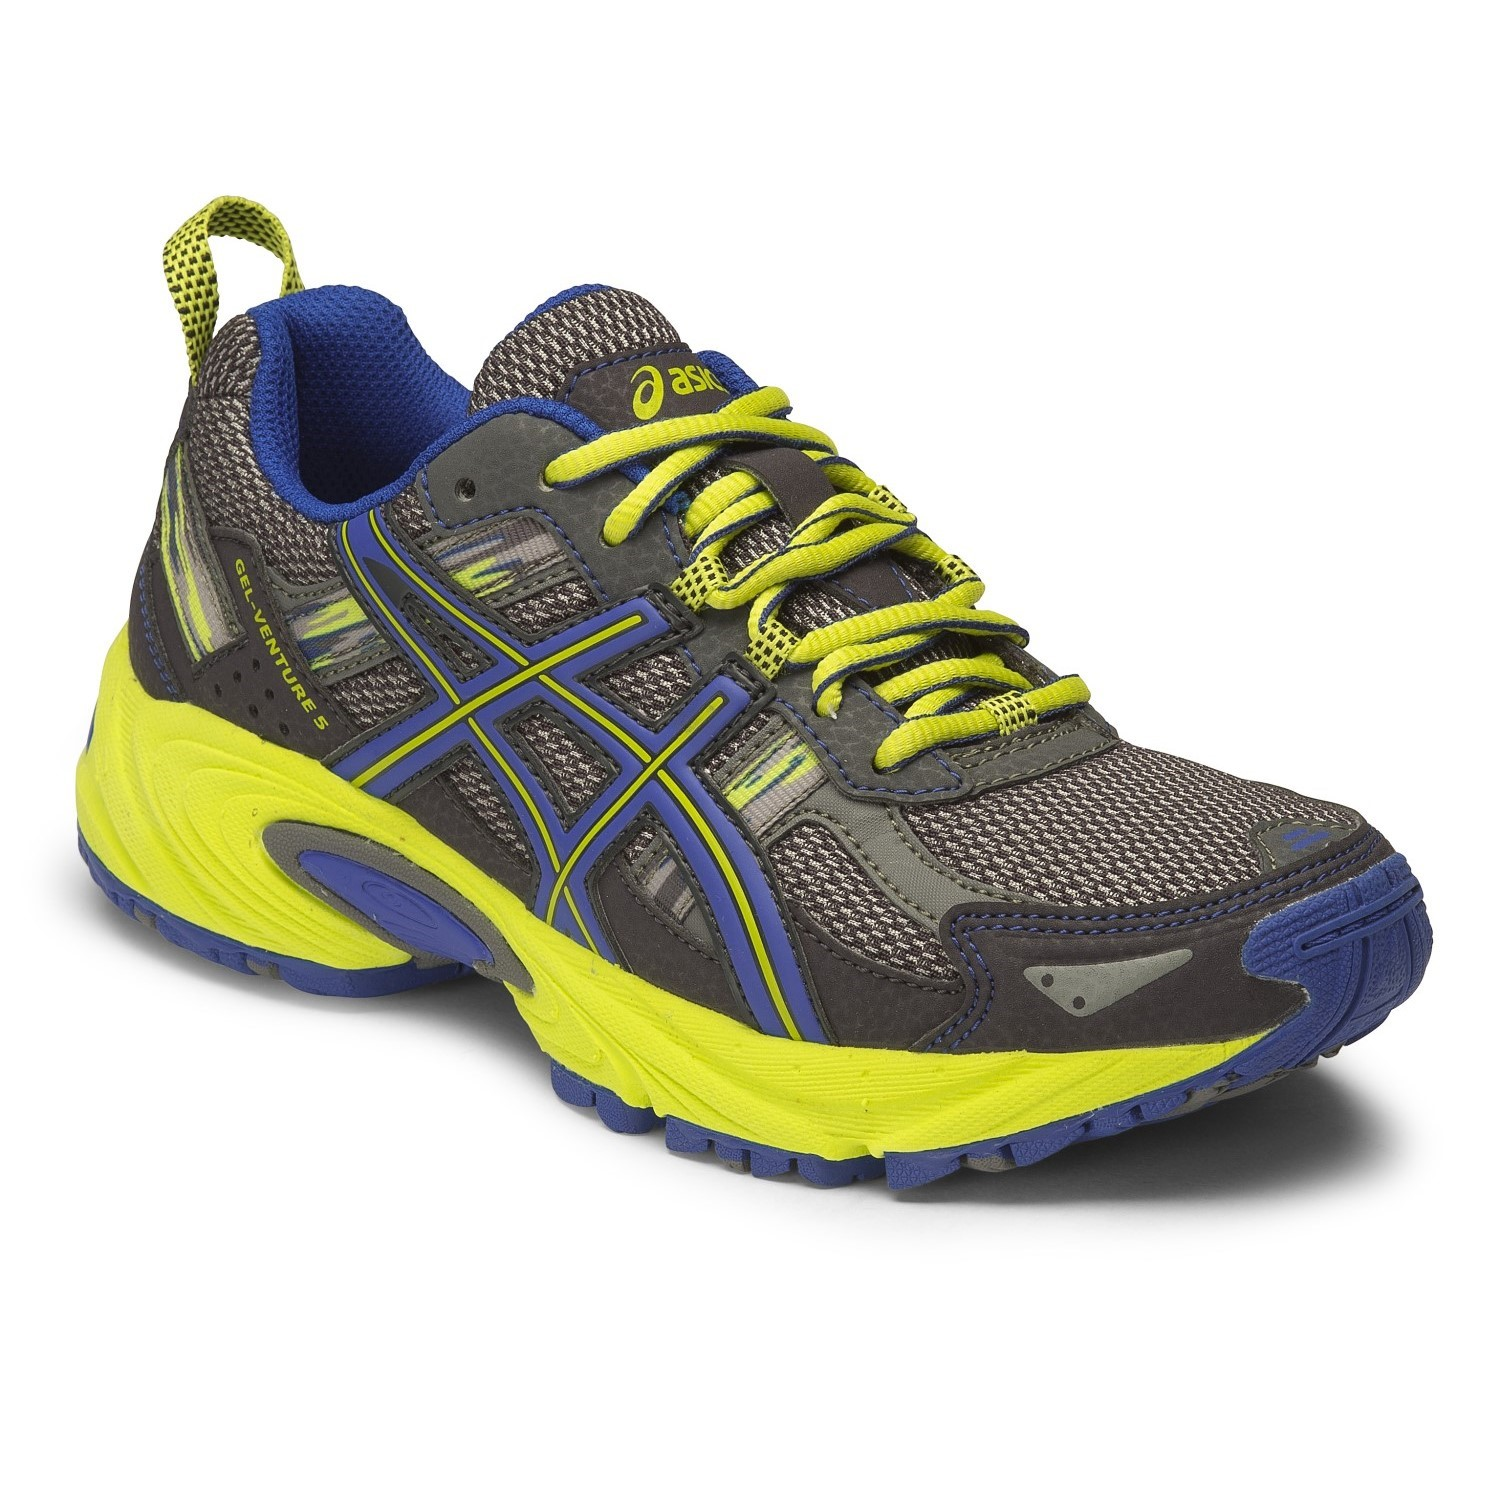 ccd2787cce Asics Gel Venture 5 GS - Kids Boys Trail Running Shoes